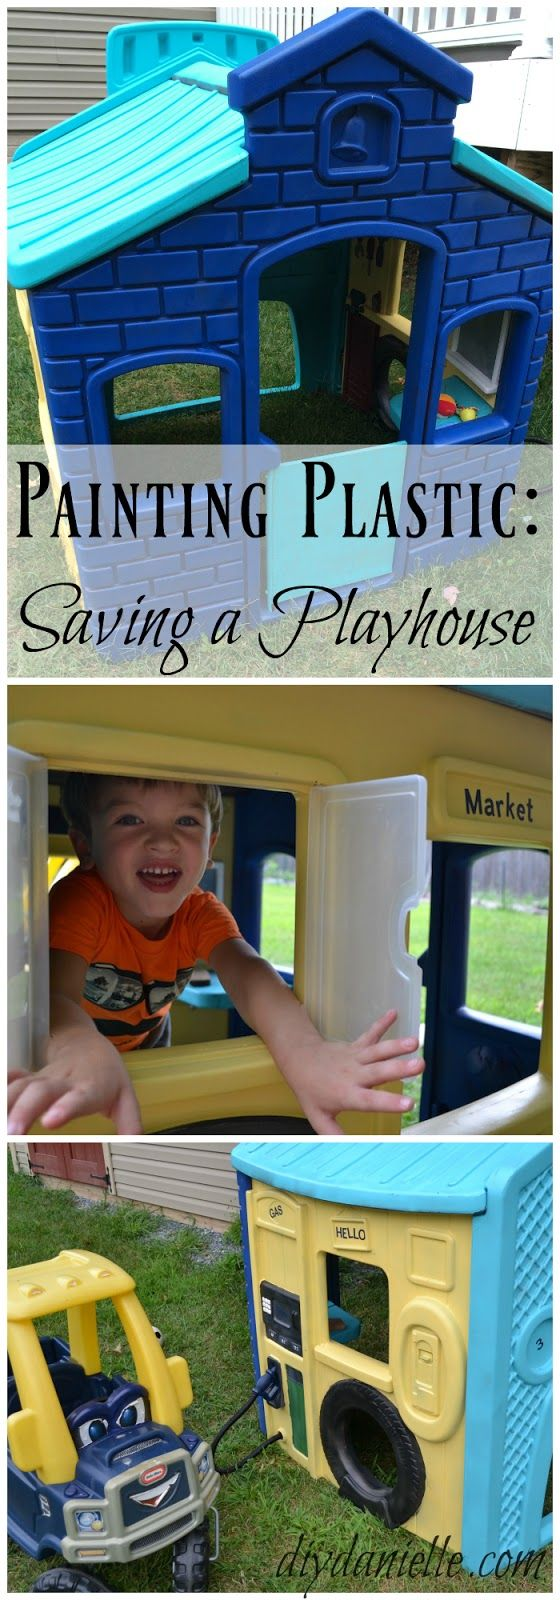 How to paint a plastic playhouse to customize it or to save it from a dumpster.